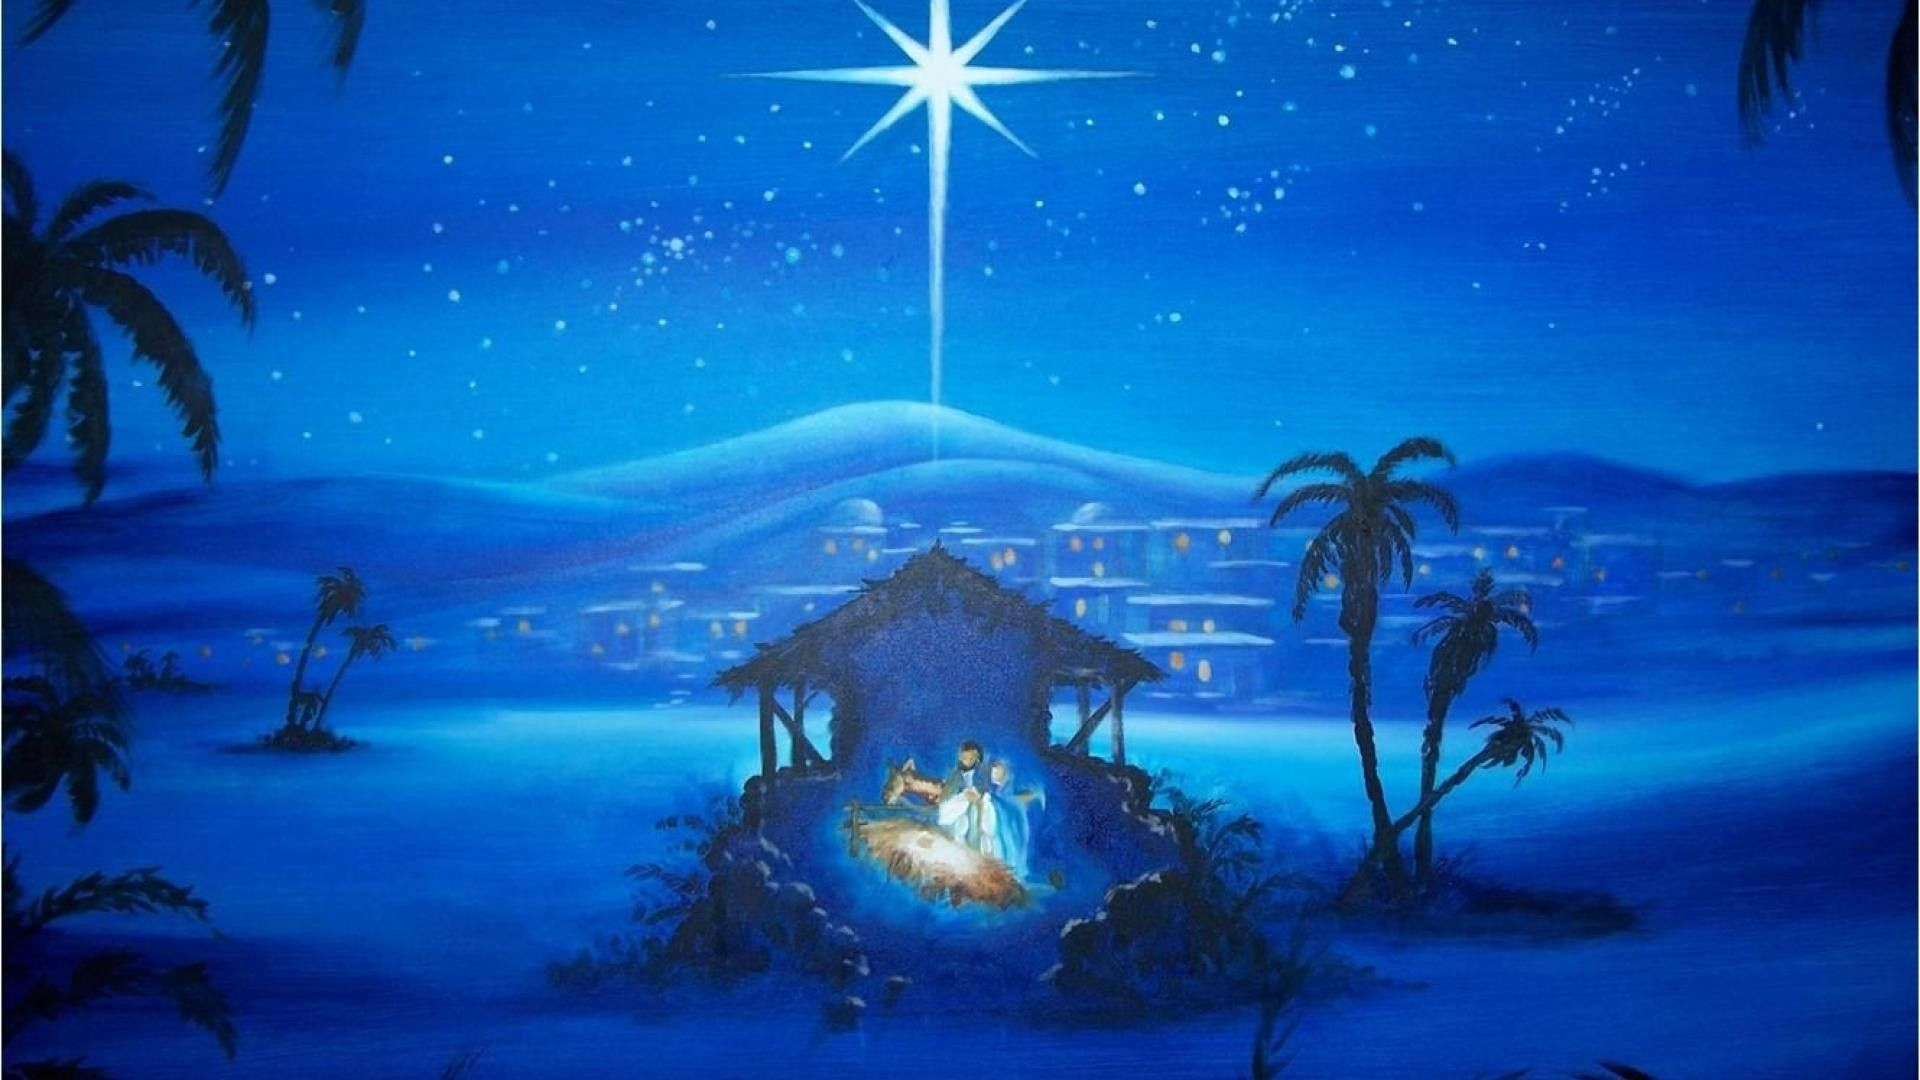 1920x1080 Christmas Nativity Scene wallpaper ·① Download free HD backgrounds ...